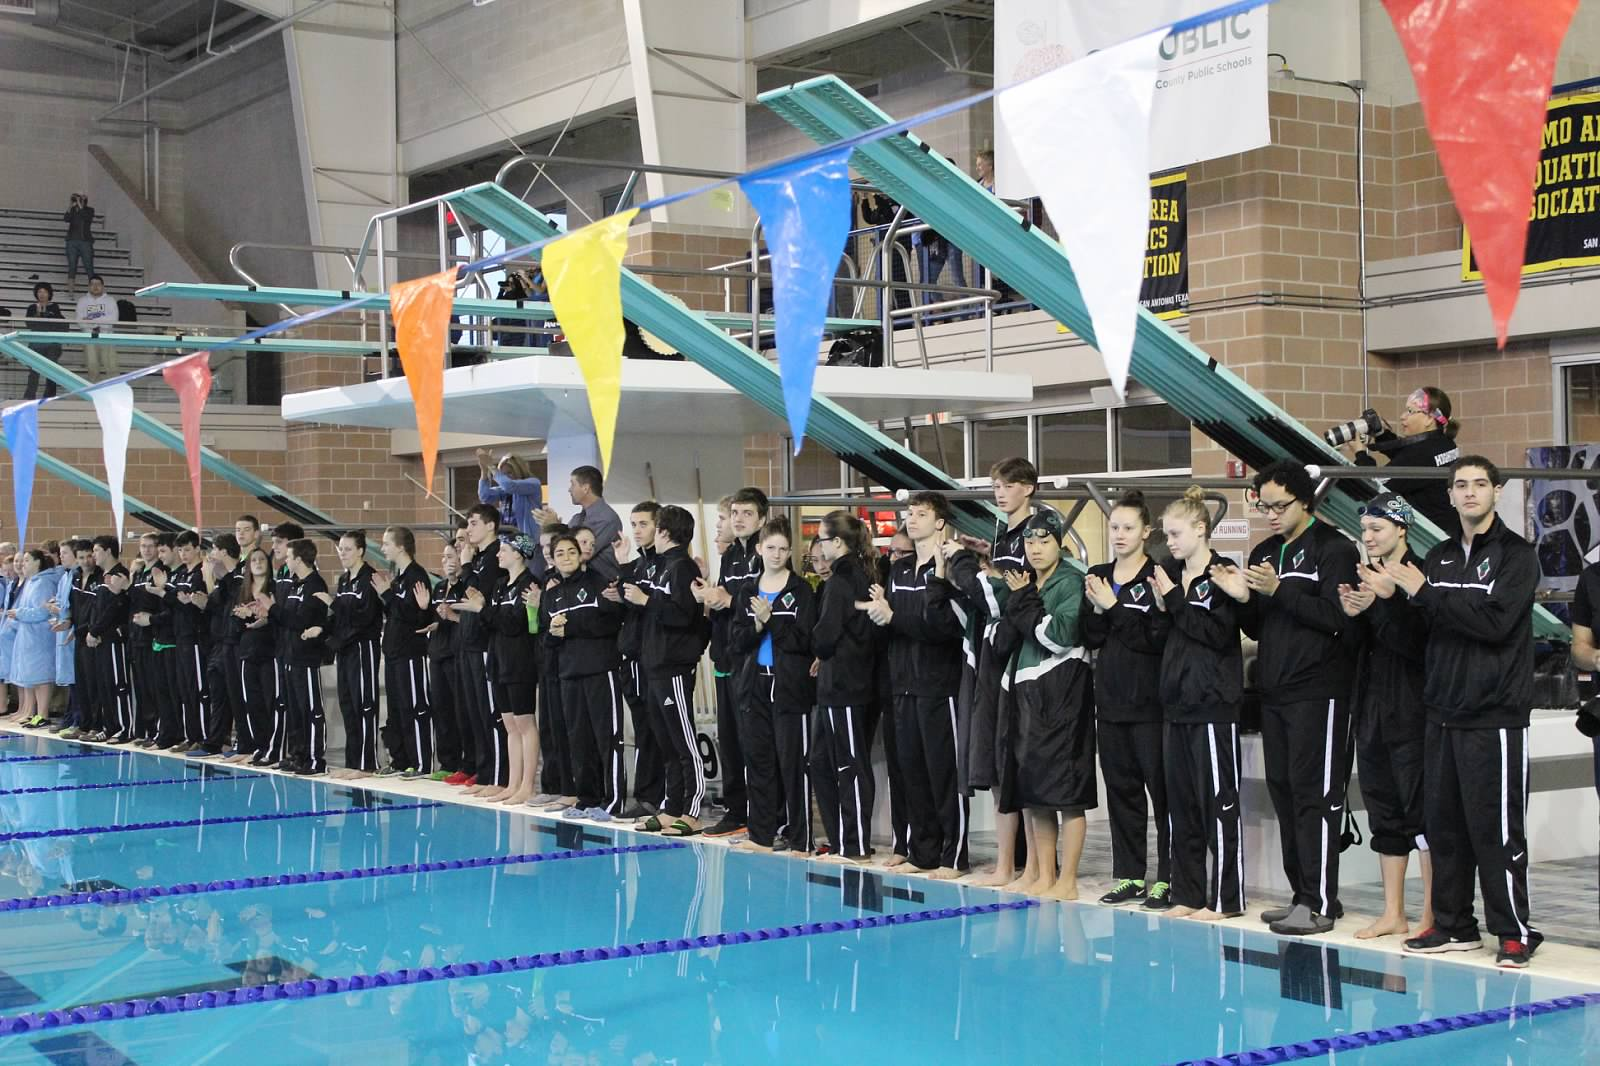 Districts_2015 014-1